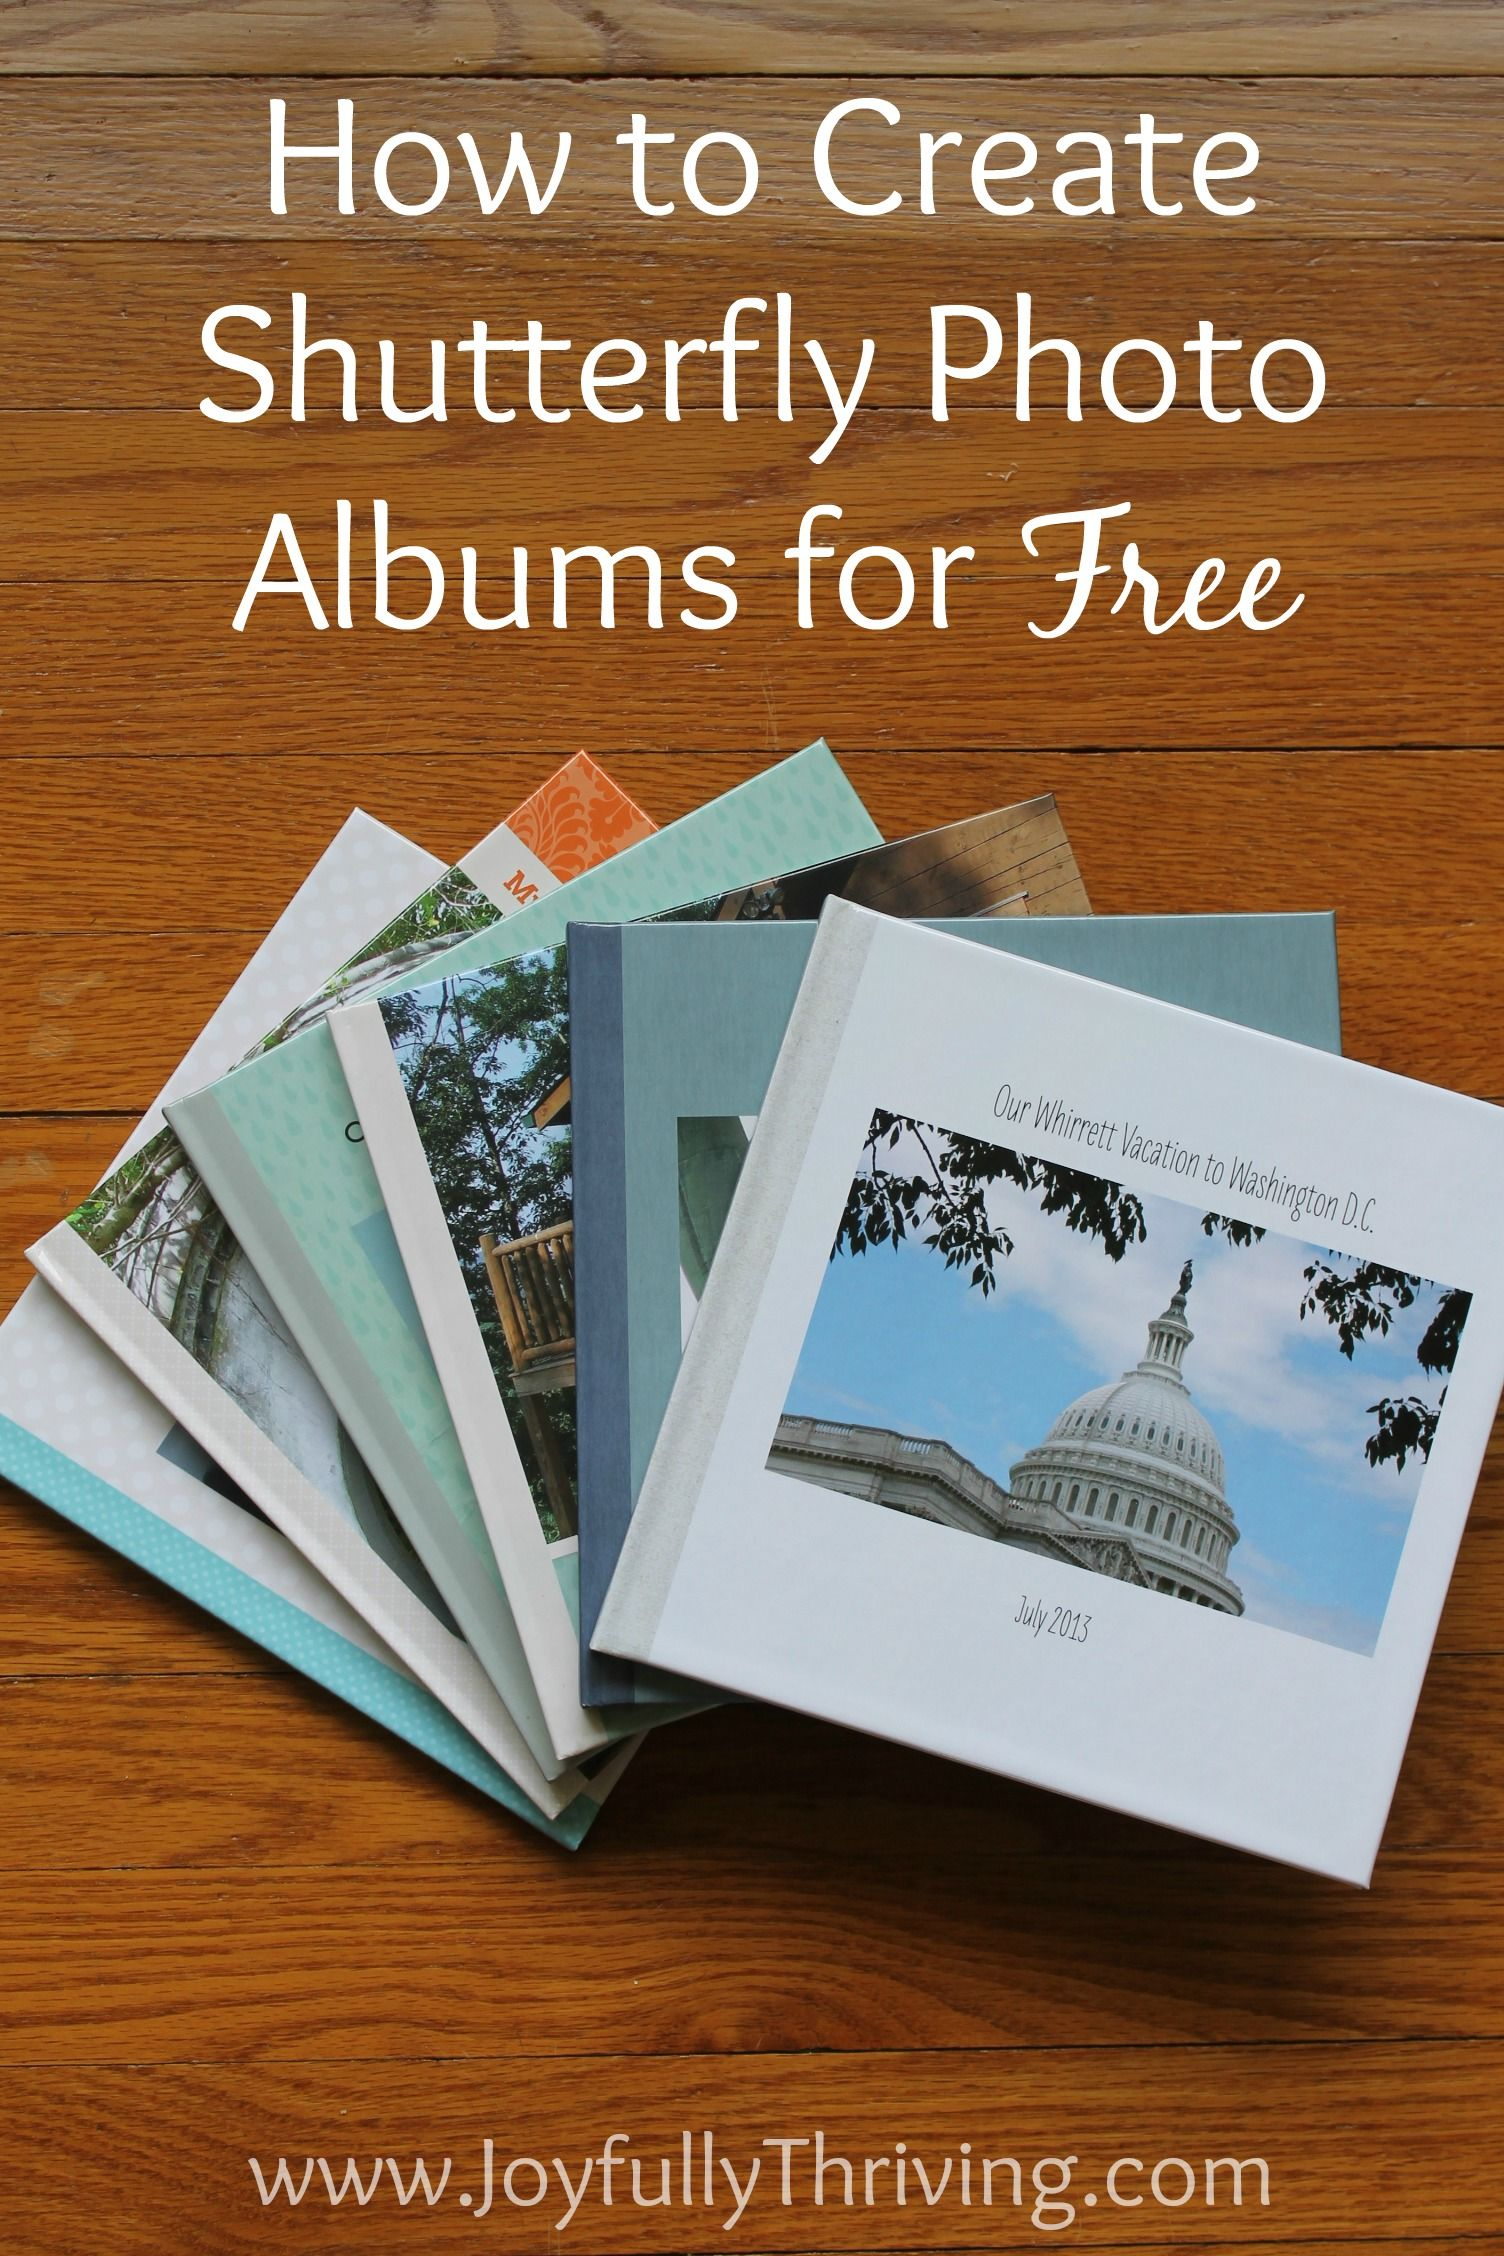 5 Easy Ways To Create Shutterfly Photo Albums For Free Pinned